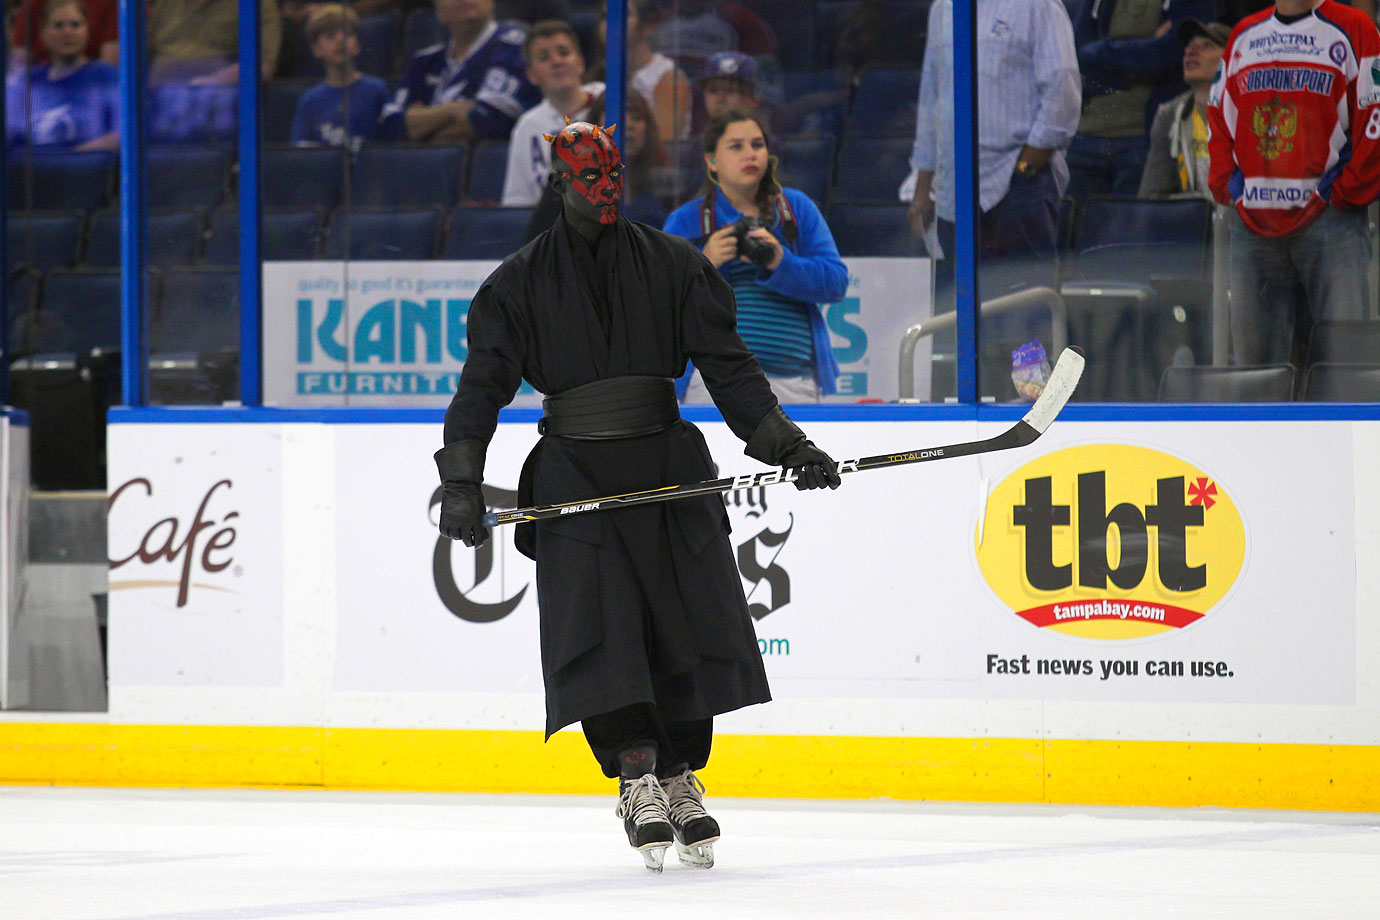 Darth Maul skates on the rink during a promotion between periods of a game between the San Jose Sharks and the Tampa Bay Lightning on Feb. 16, 2012 at the Tampa Bay Times Forum.